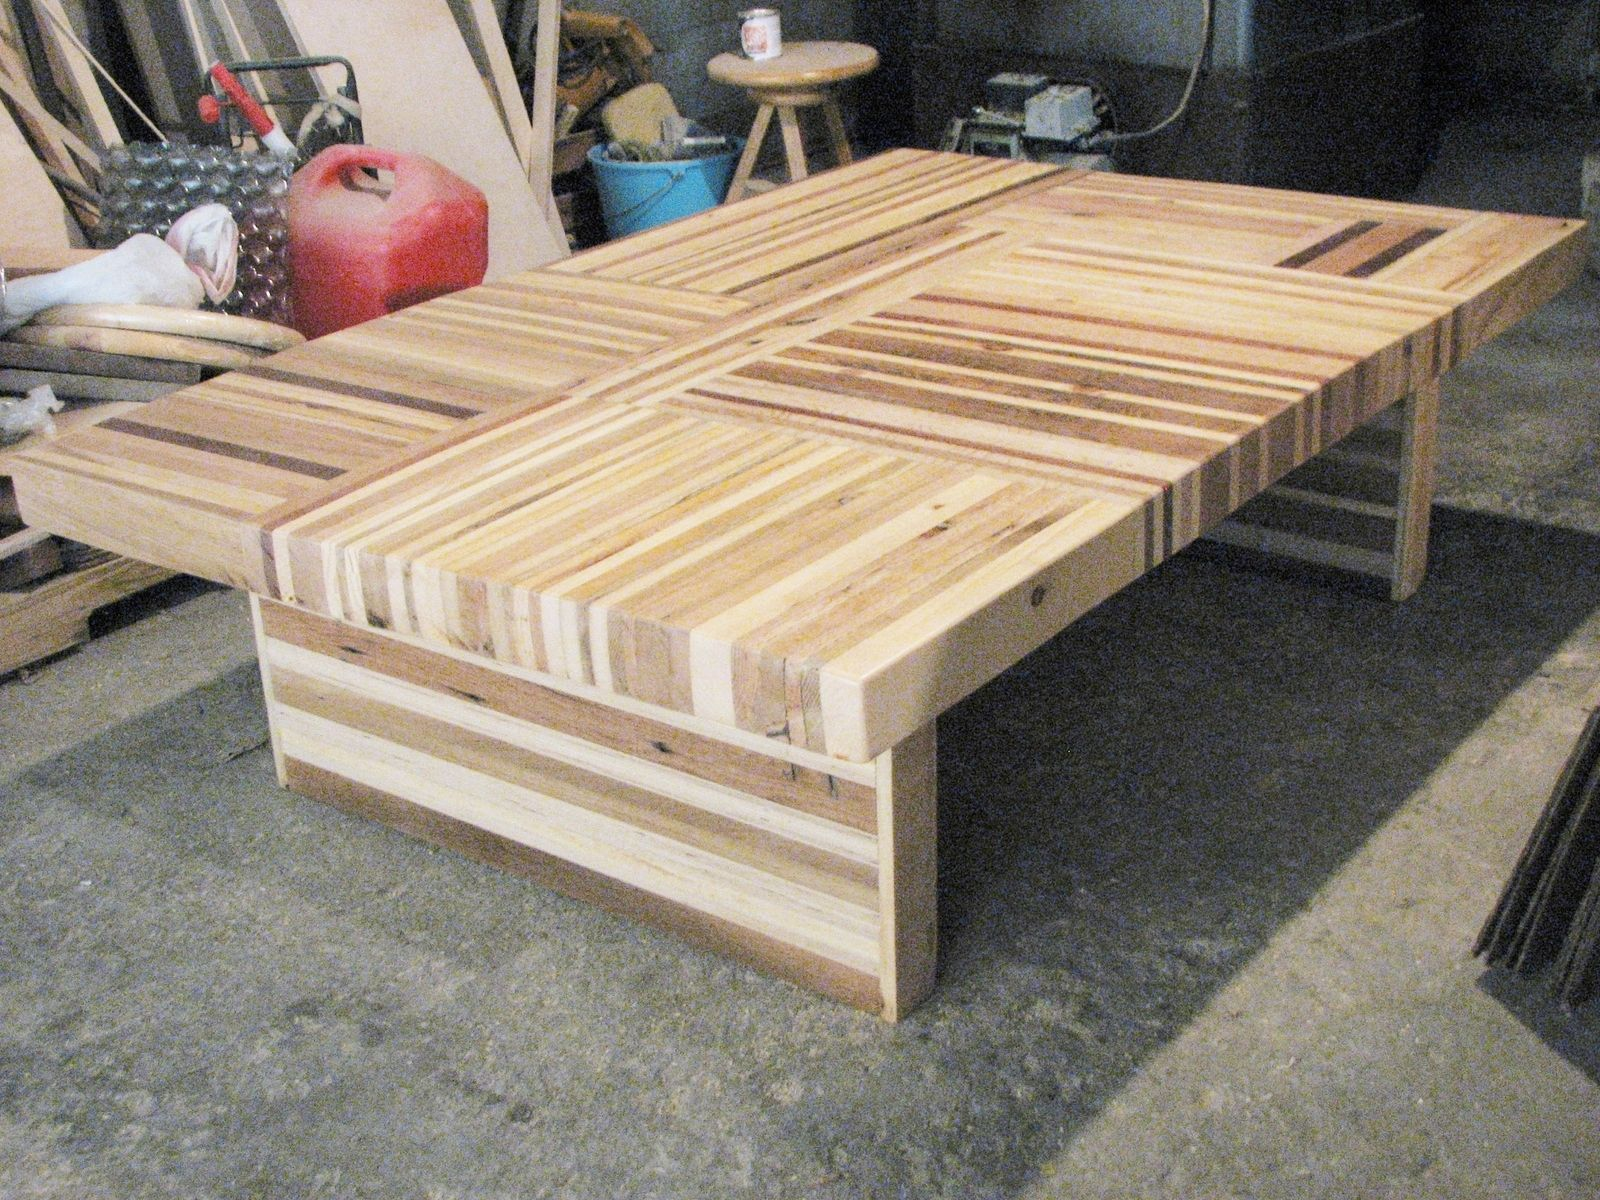 Reclaimed Butcher Block buy a custom reclaimed wood butcher block puzzle table, made to